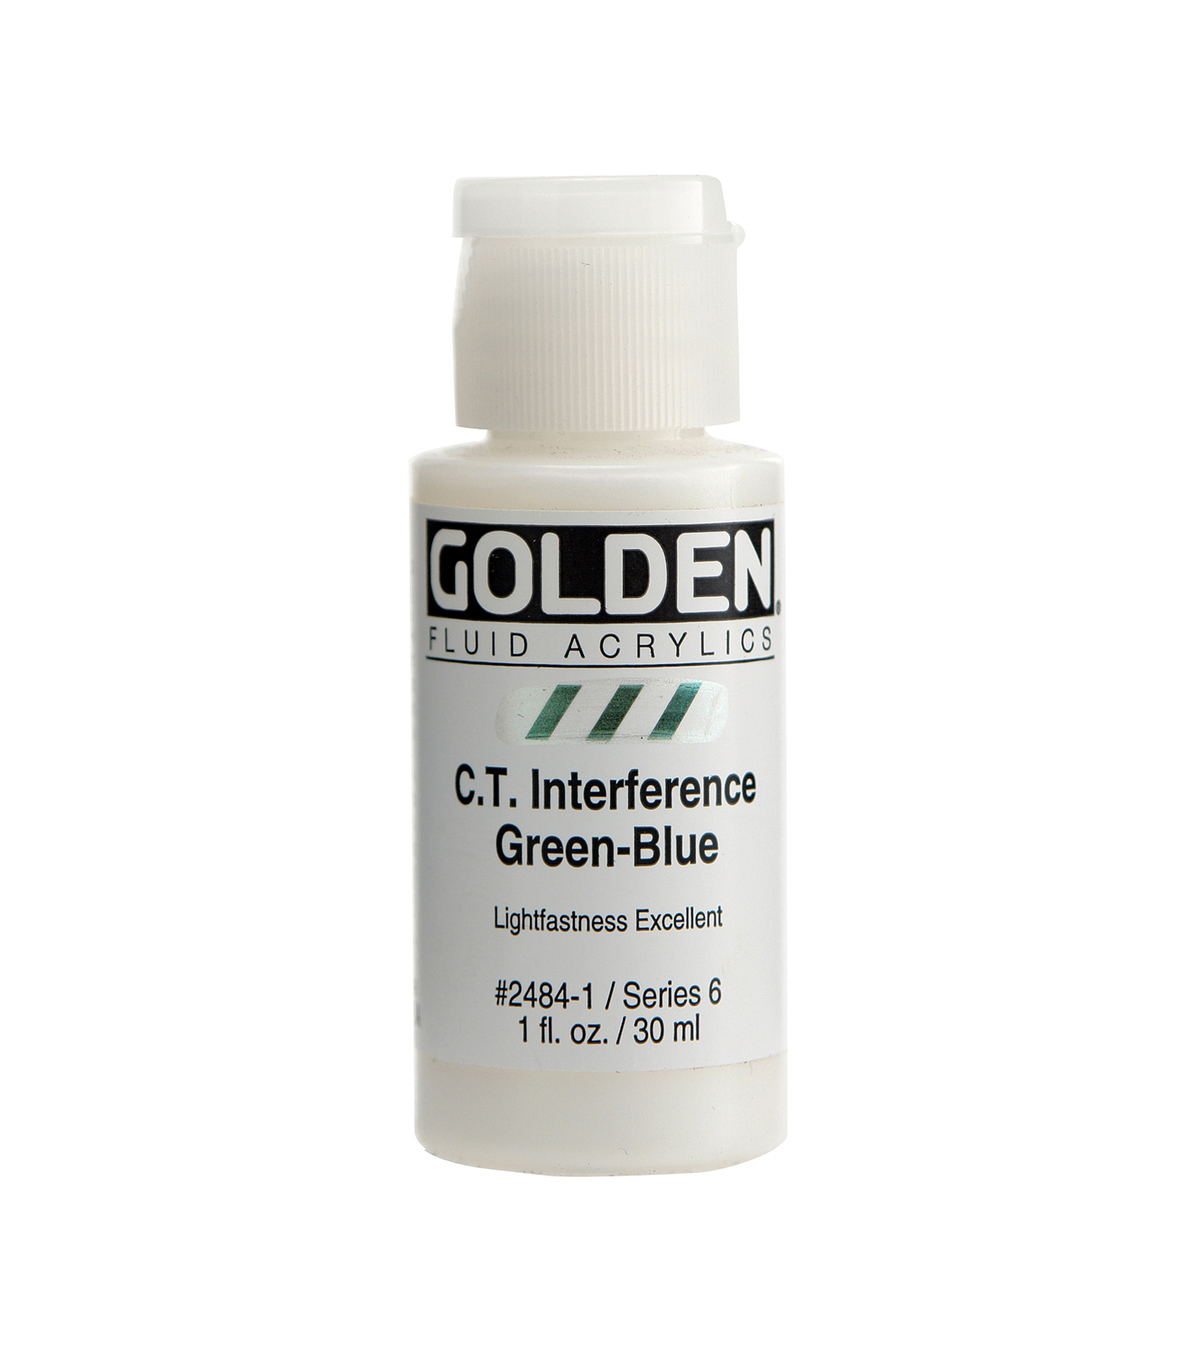 Golden 1 fl. oz. Interference Fluid Acrylic Color